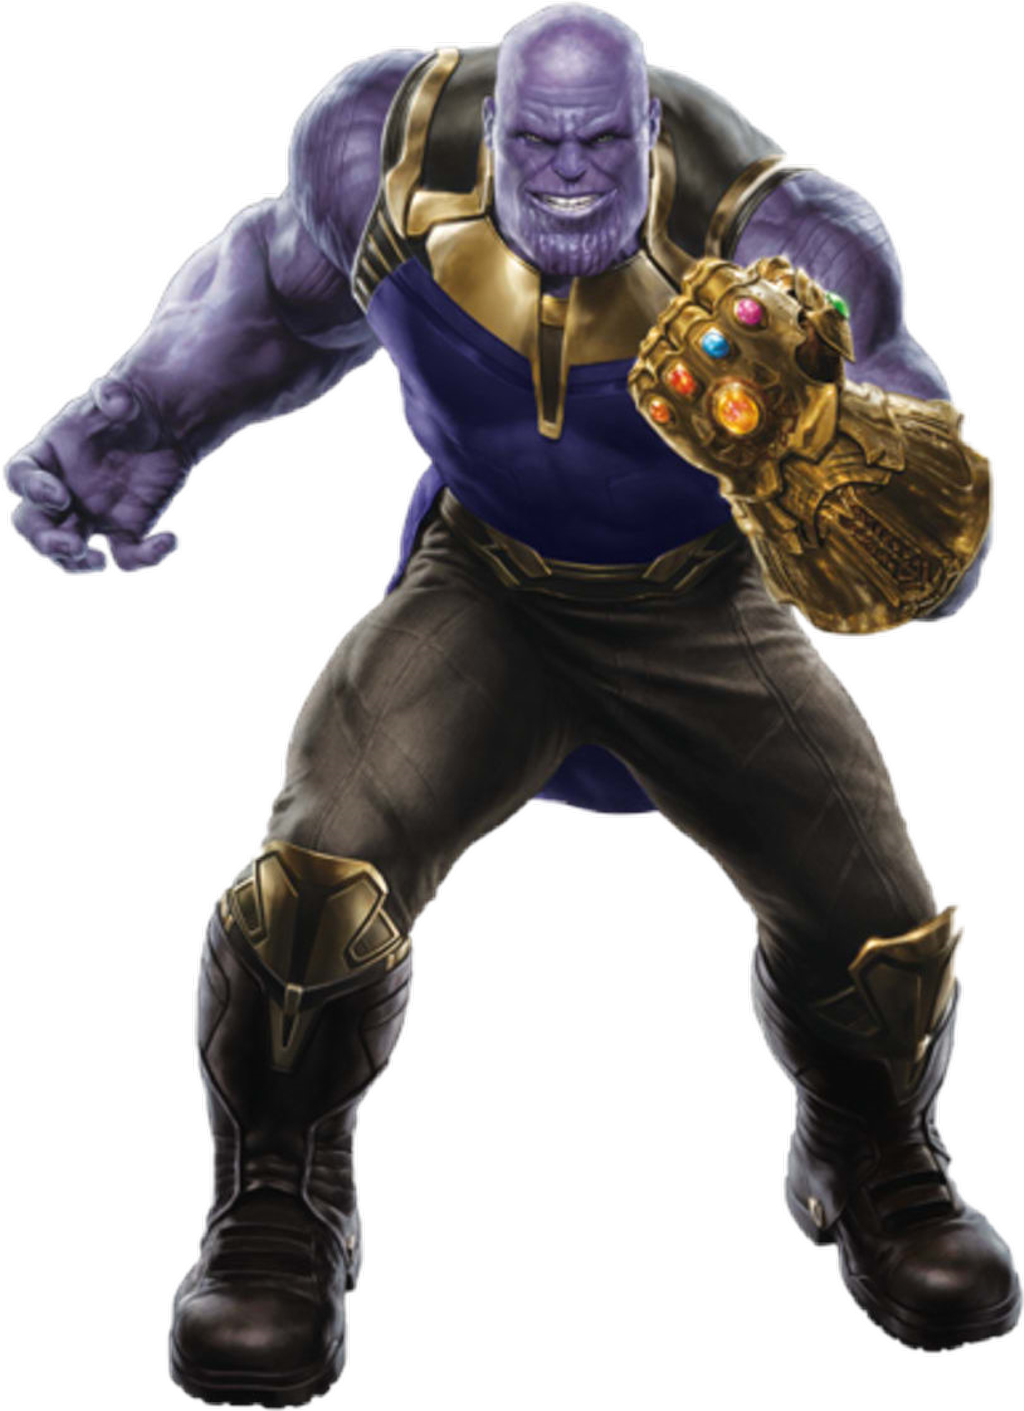 Thanos clipart. Sticker by black knight